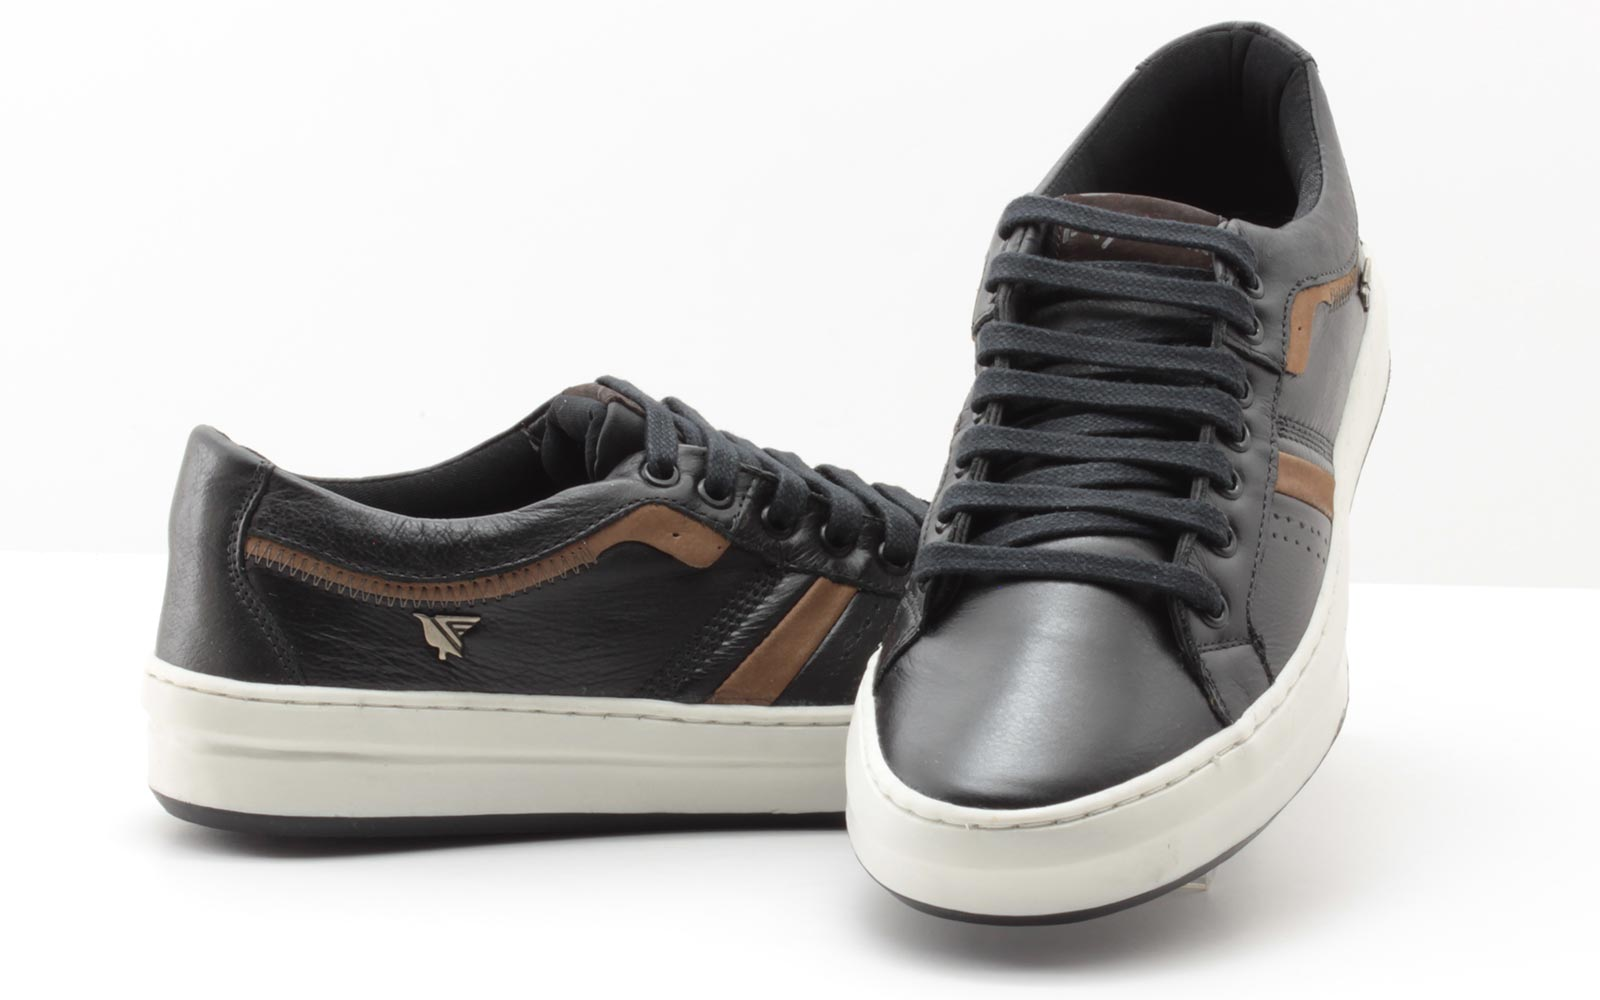 Sapatênis Fly Walk Masculino Couro 14042Fly